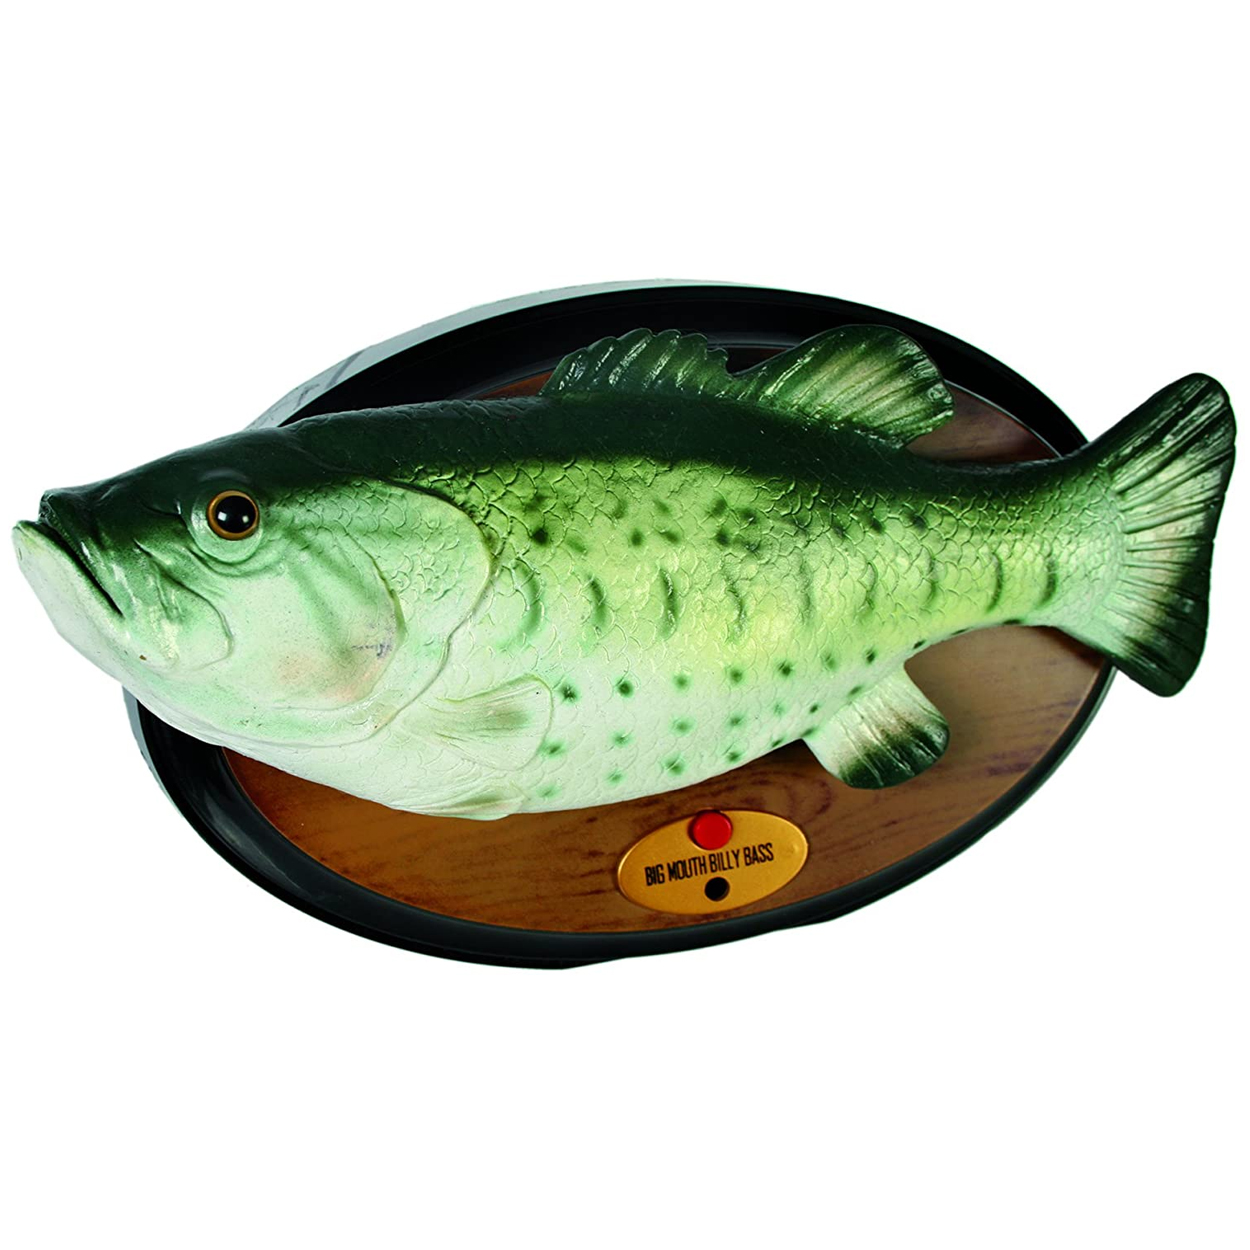 Billy Bass, singender Fisch mit Bewegung (Don't worry be happy & I'll survive)